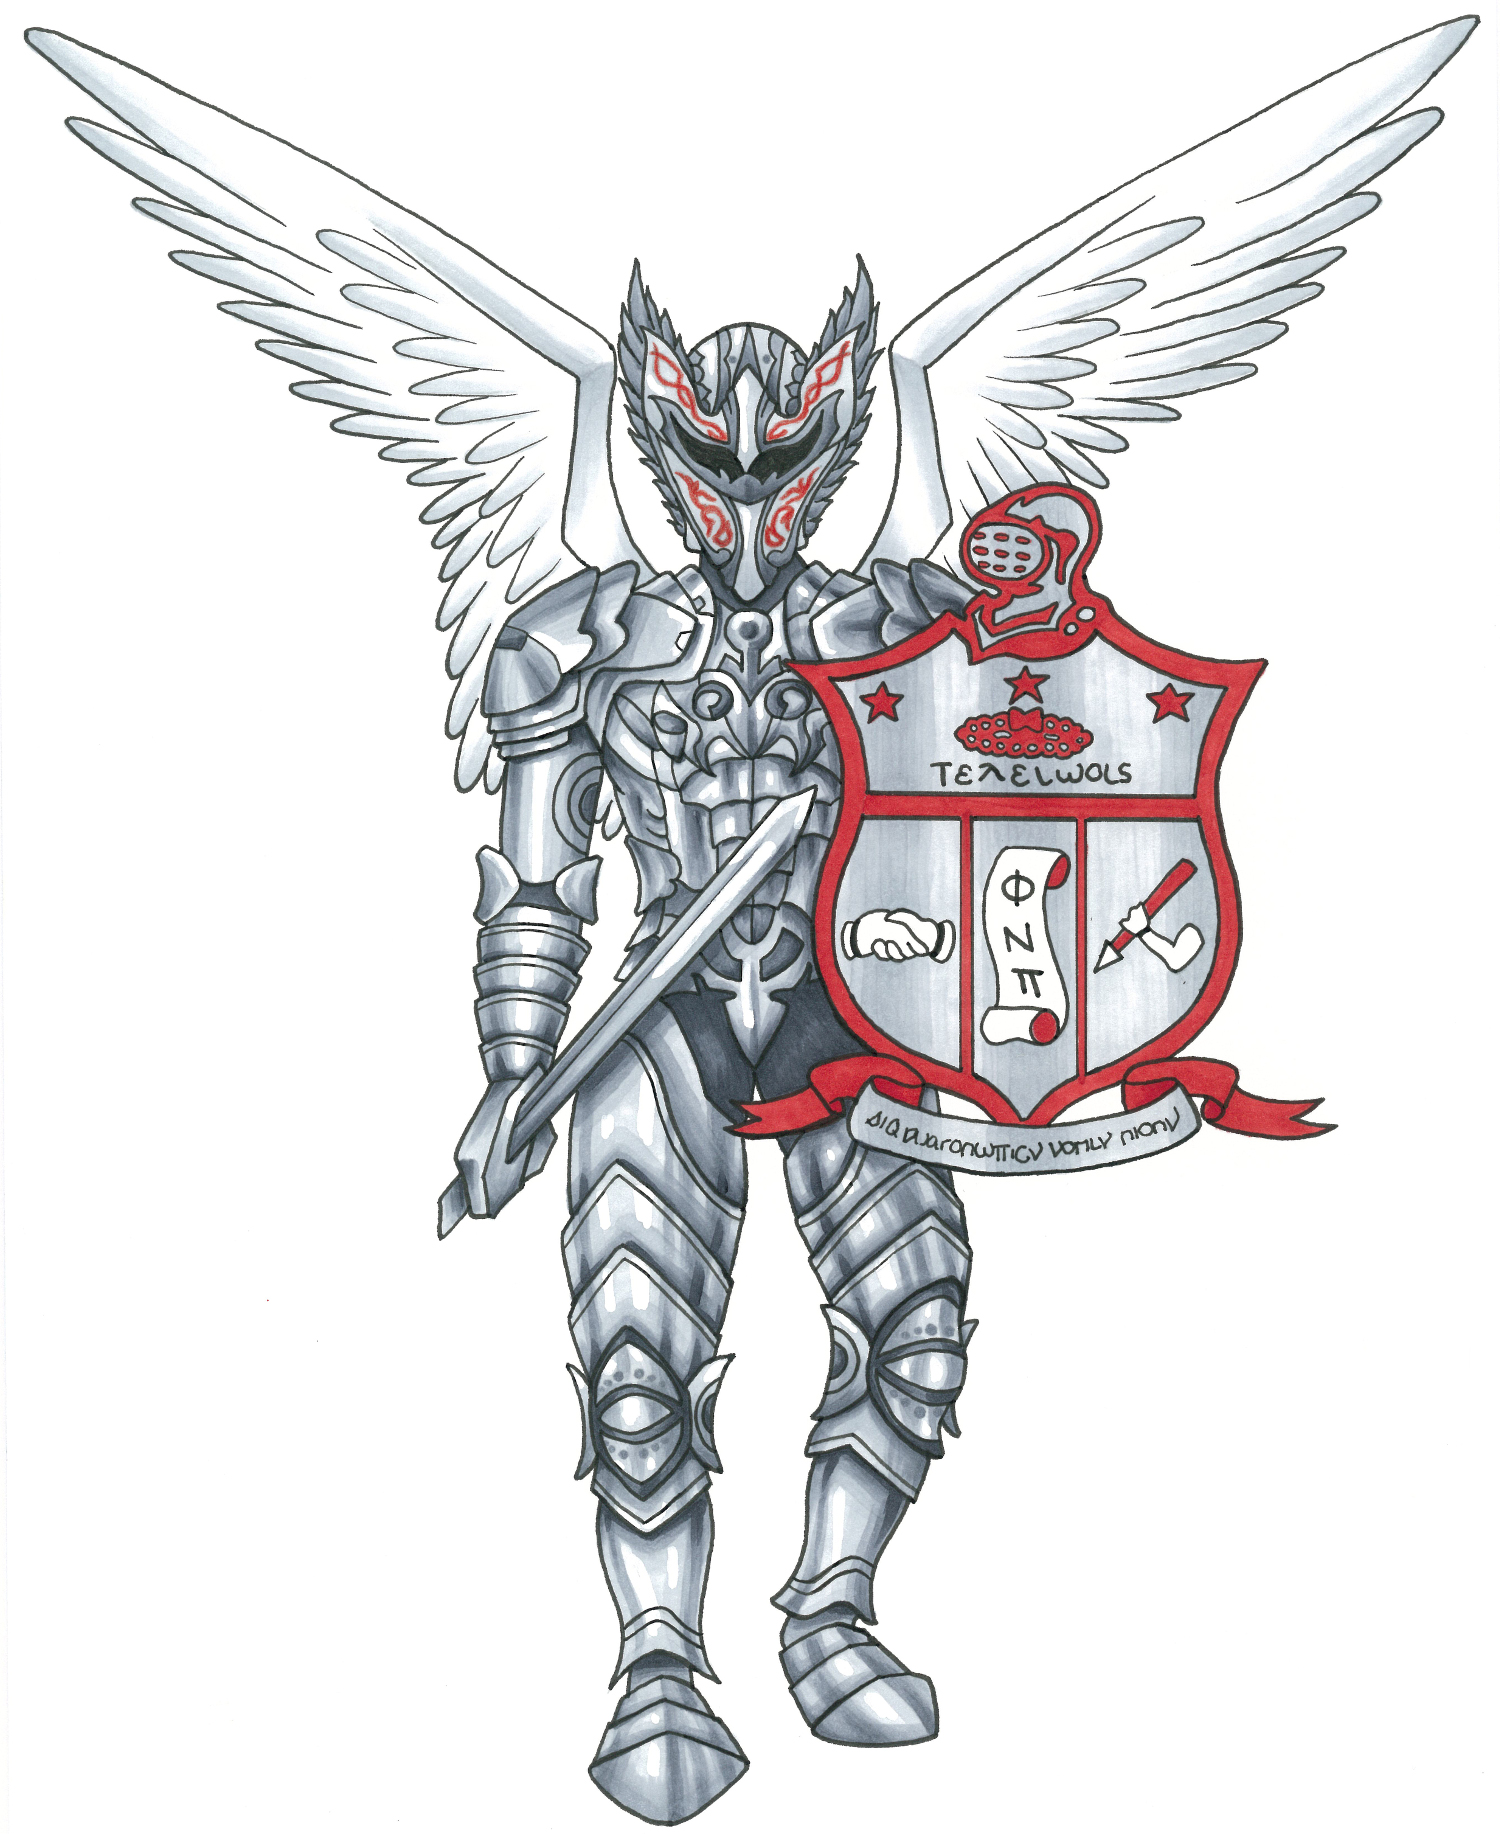 A silver knight with an elven knight helmer, knight armor, and wings.